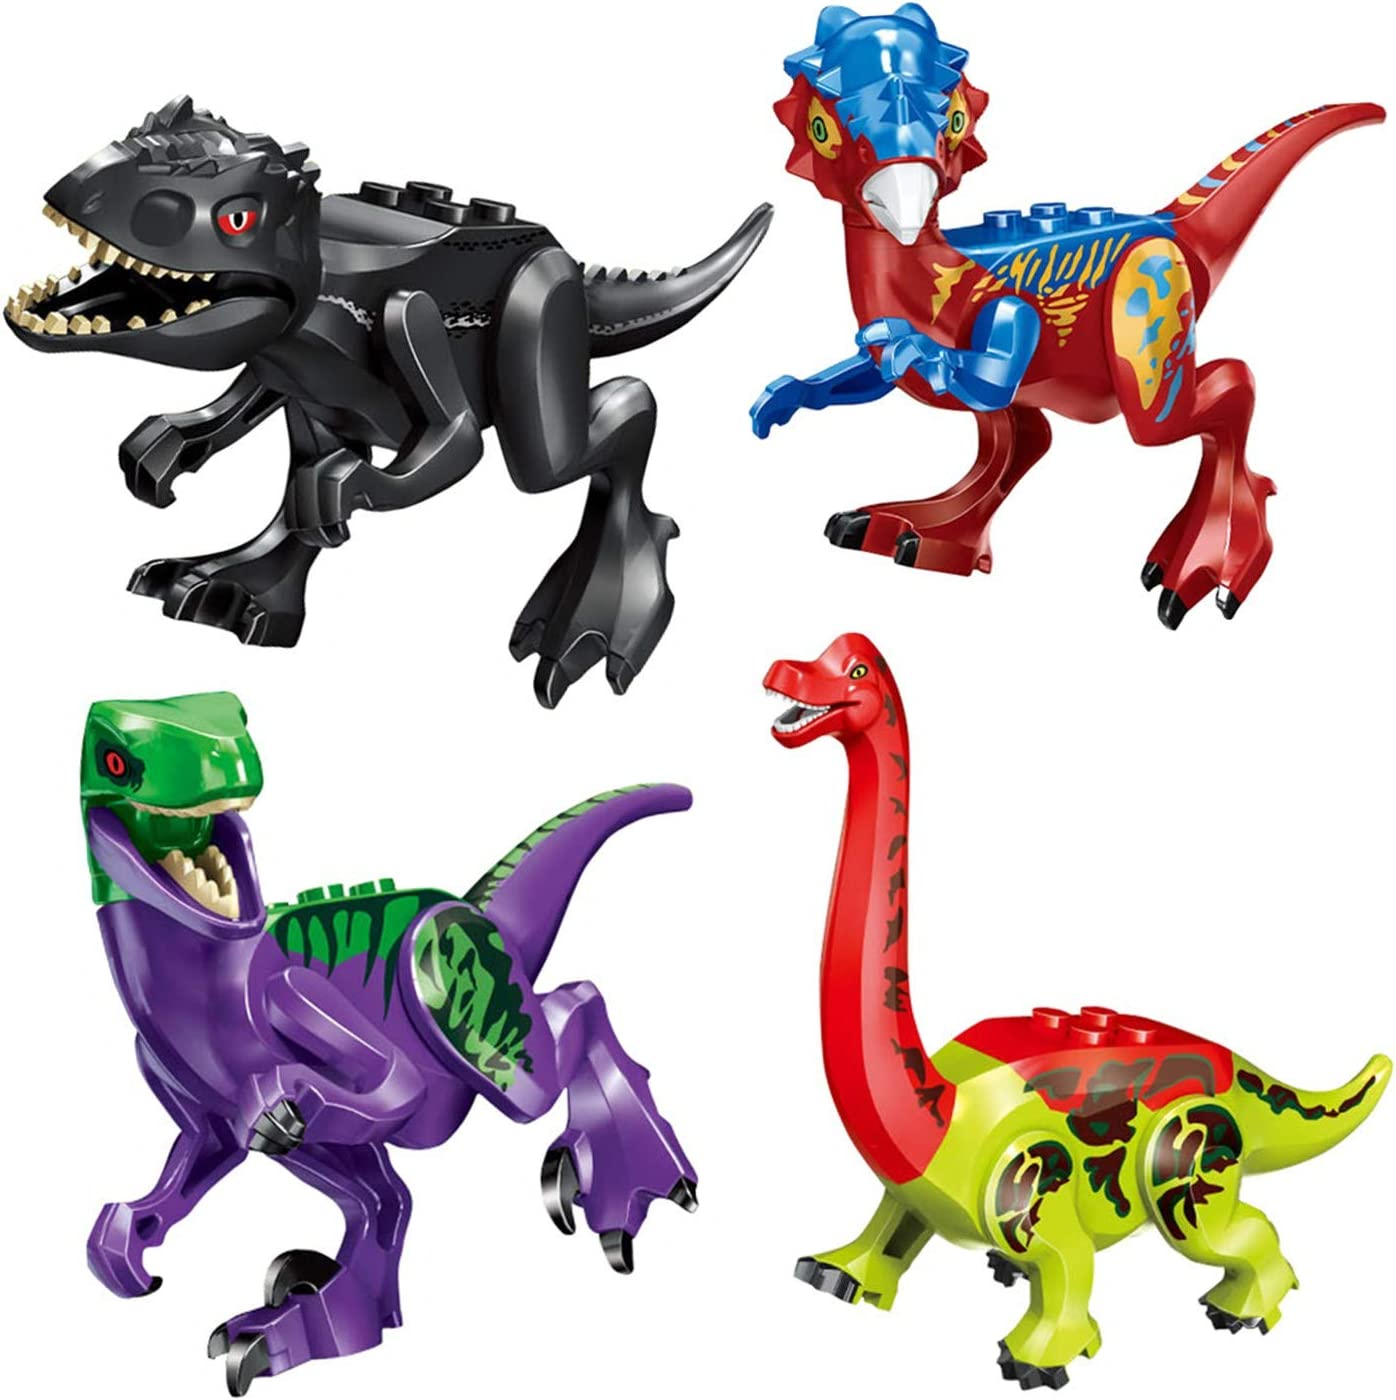 Multicolored Pterosauria LTCtoy 8pcs Dinos Toy,Buildable Dinosaur Building Blocks Figures with Movable Jaws,Including T Rex Velociraptor